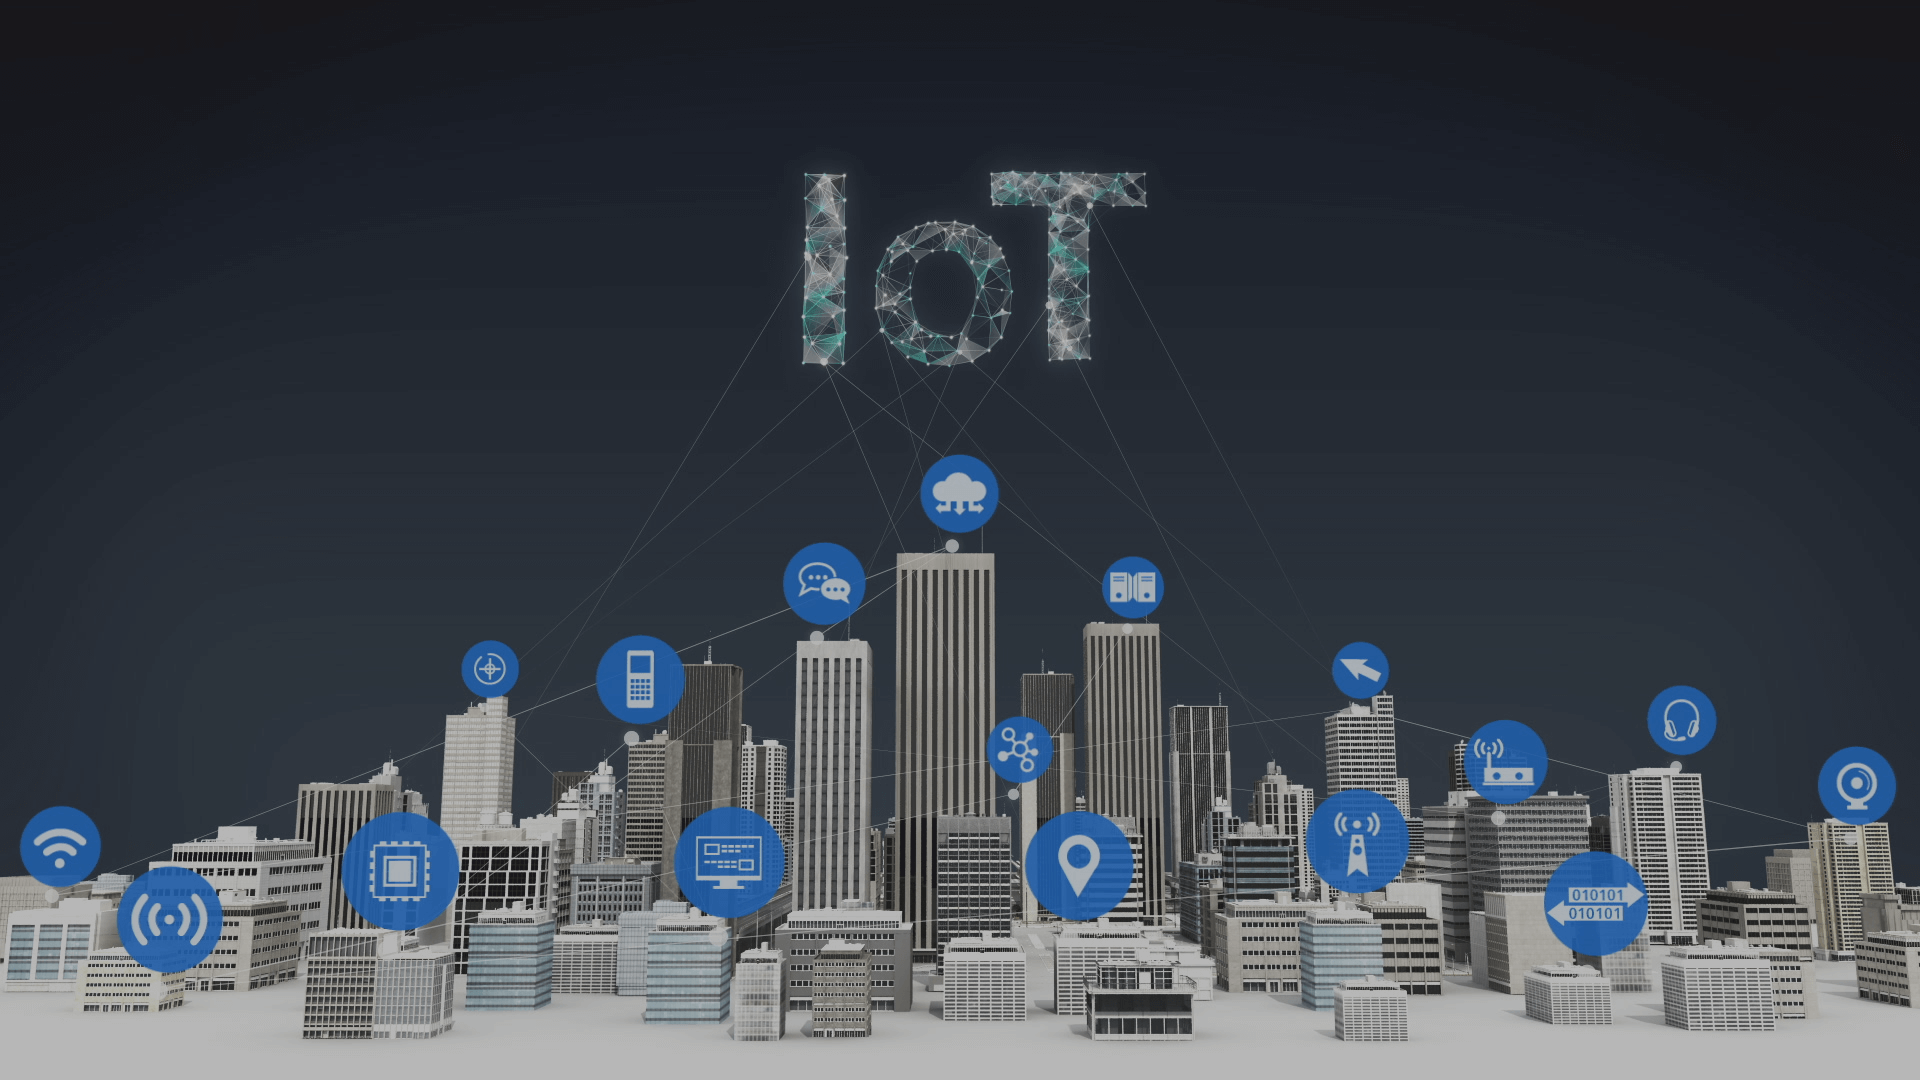 CUSTOM IoT DEVELOPMENT SERVICES